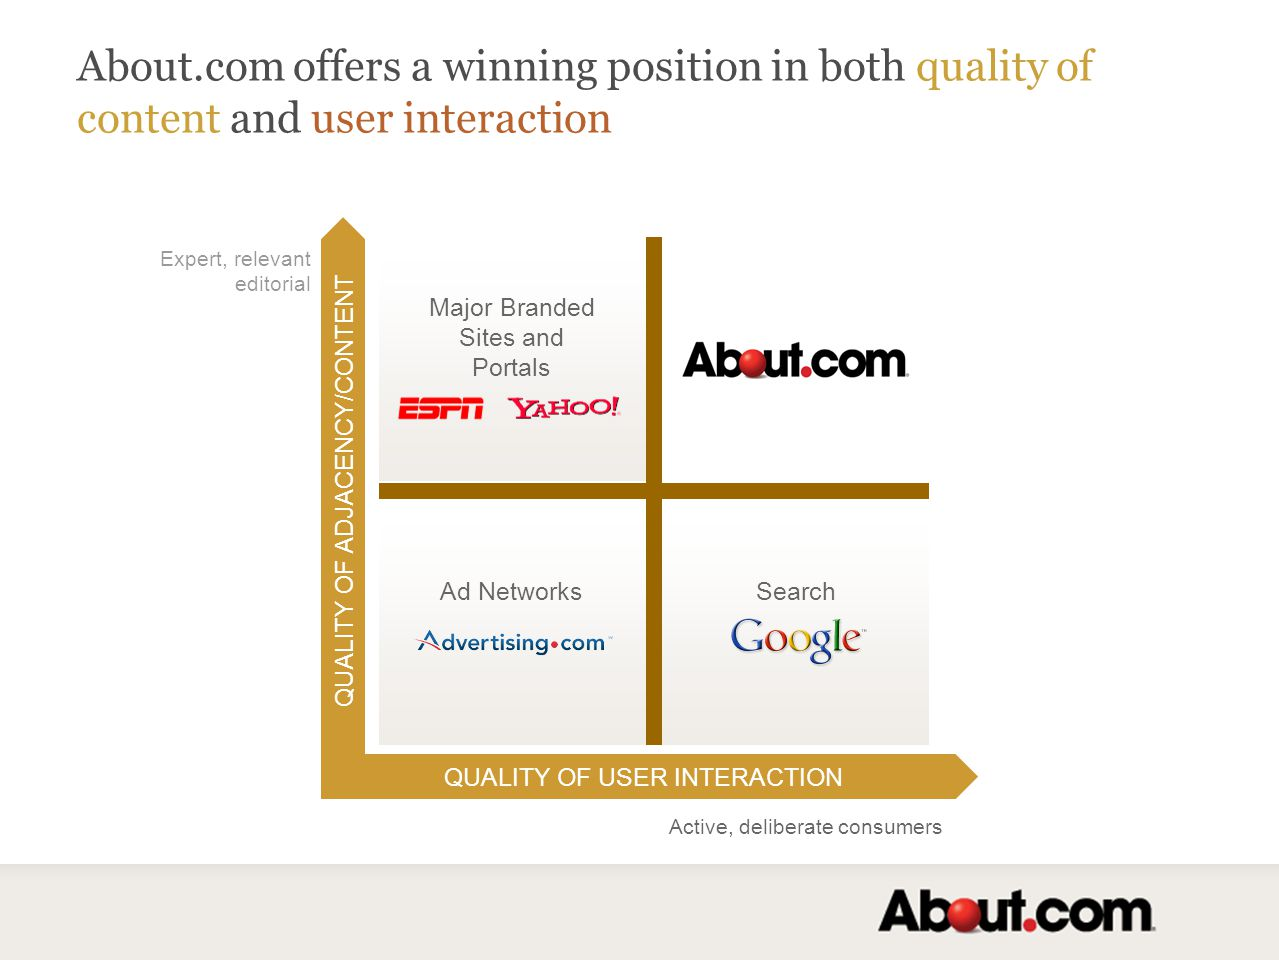 QUALITY OF USER INTERACTION QUALITY OF ADJACENCY/CONTENT Expert, relevant editorial Active, deliberate consumers Major Branded Sites and Portals Ad NetworksSearch About.com offers a winning position in both quality of content and user interaction